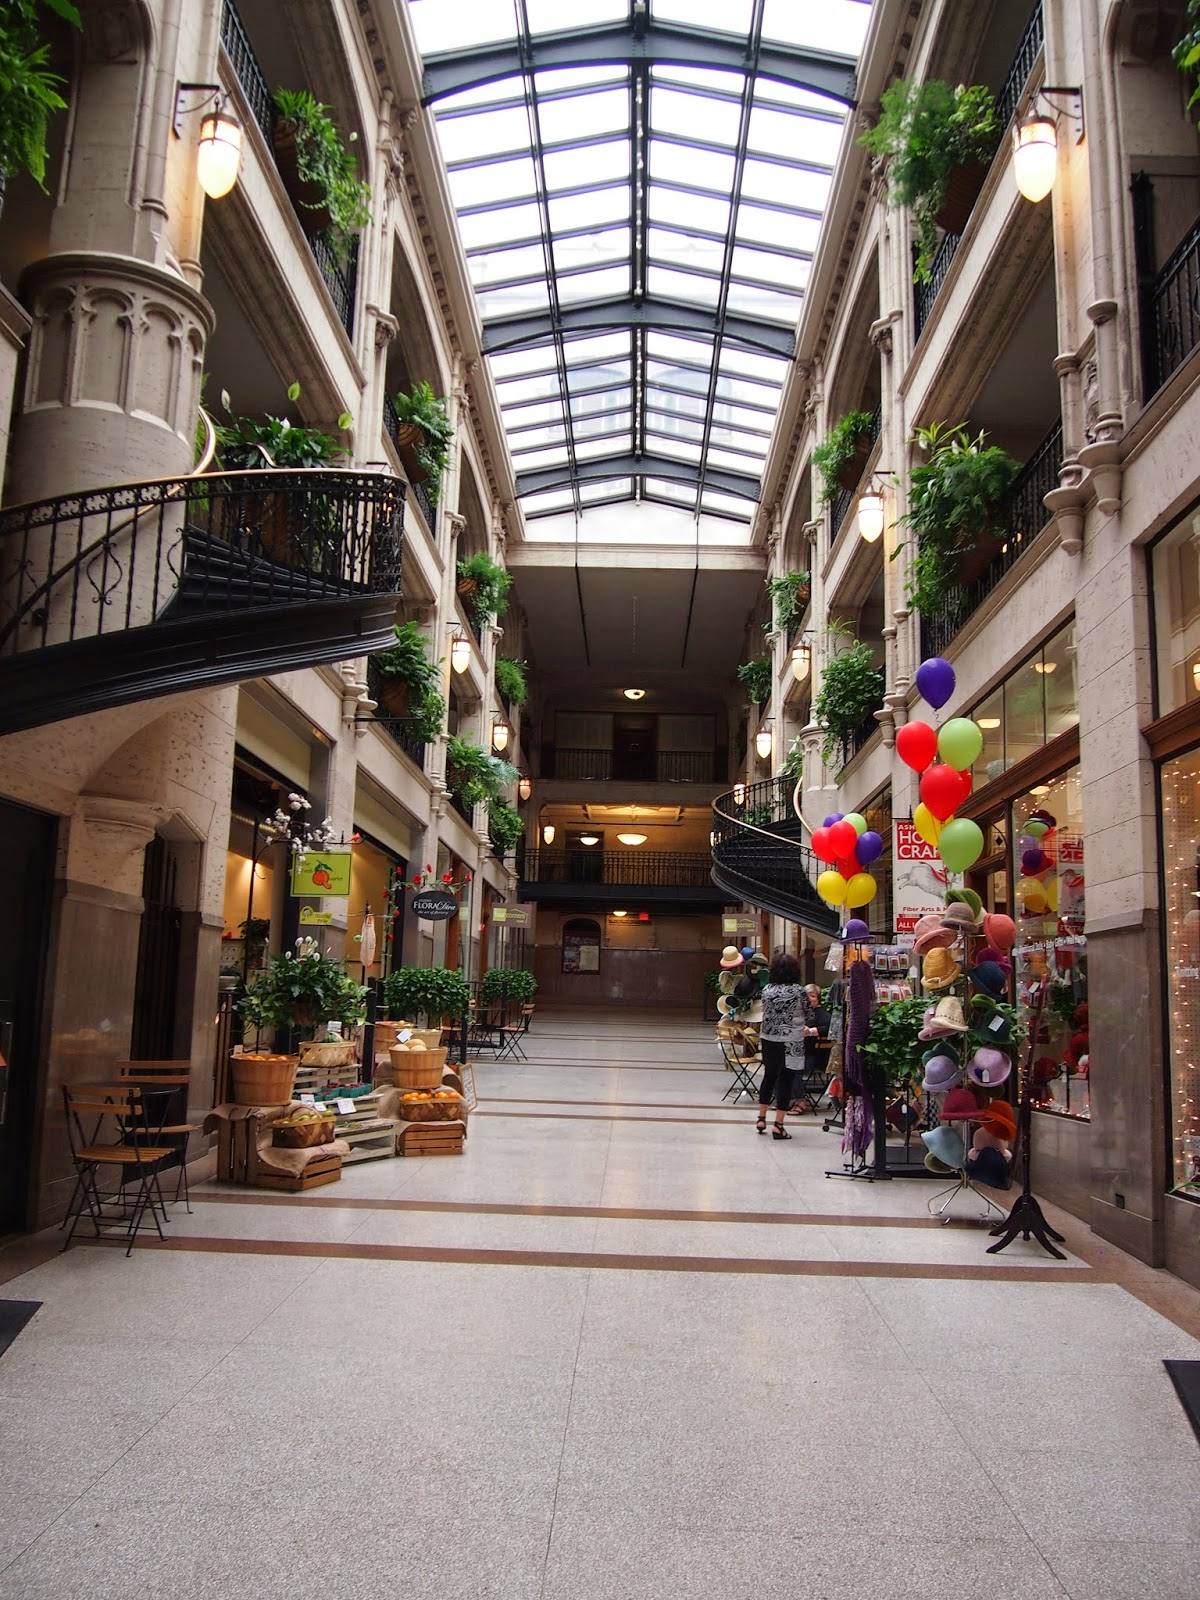 The Grove Arcade in Asheville, North Carolina